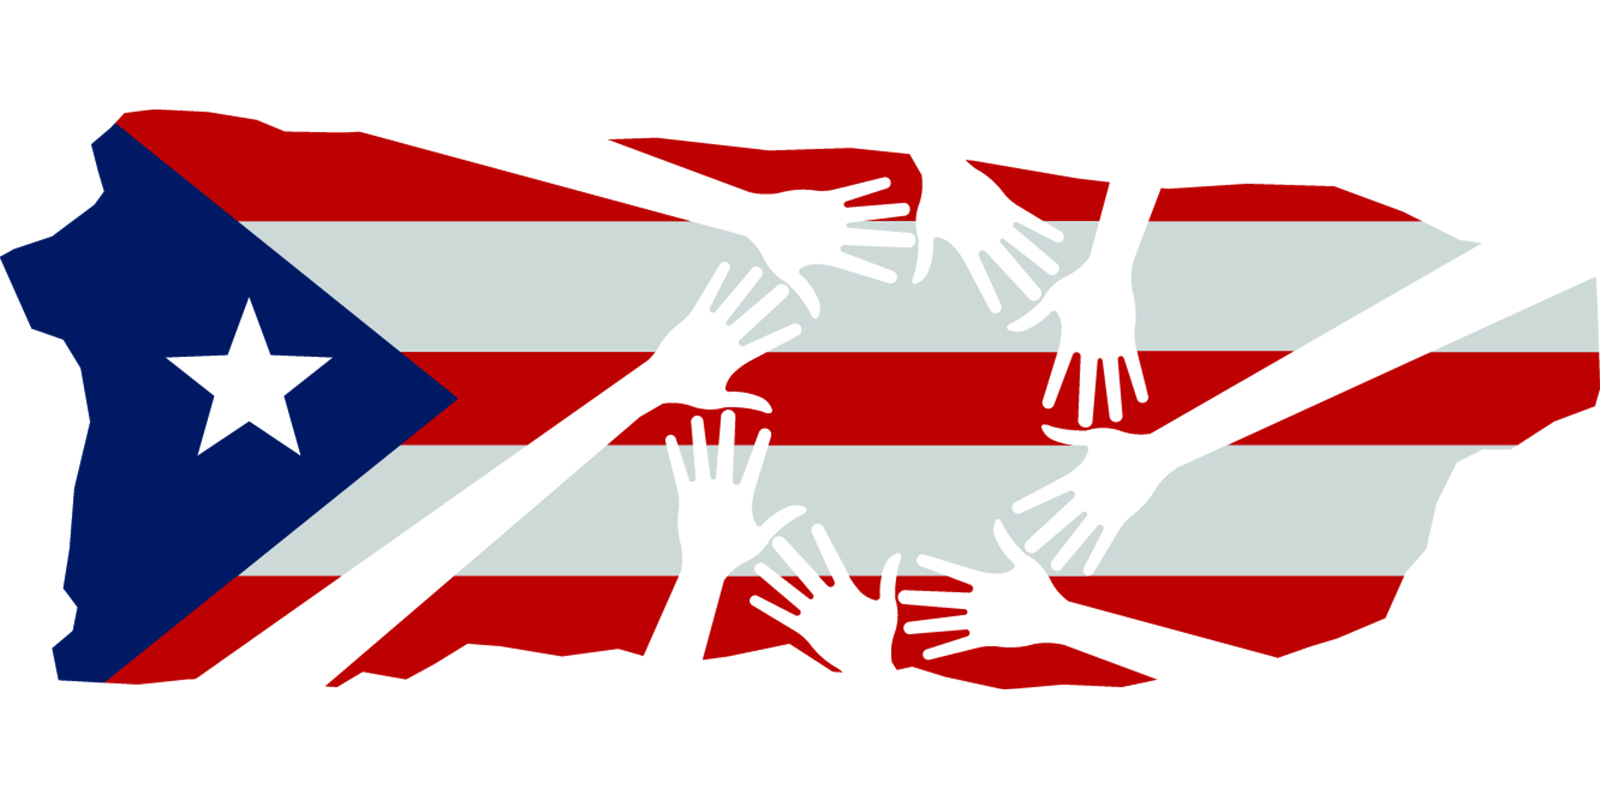 Helping hands over Puerto Rico flag